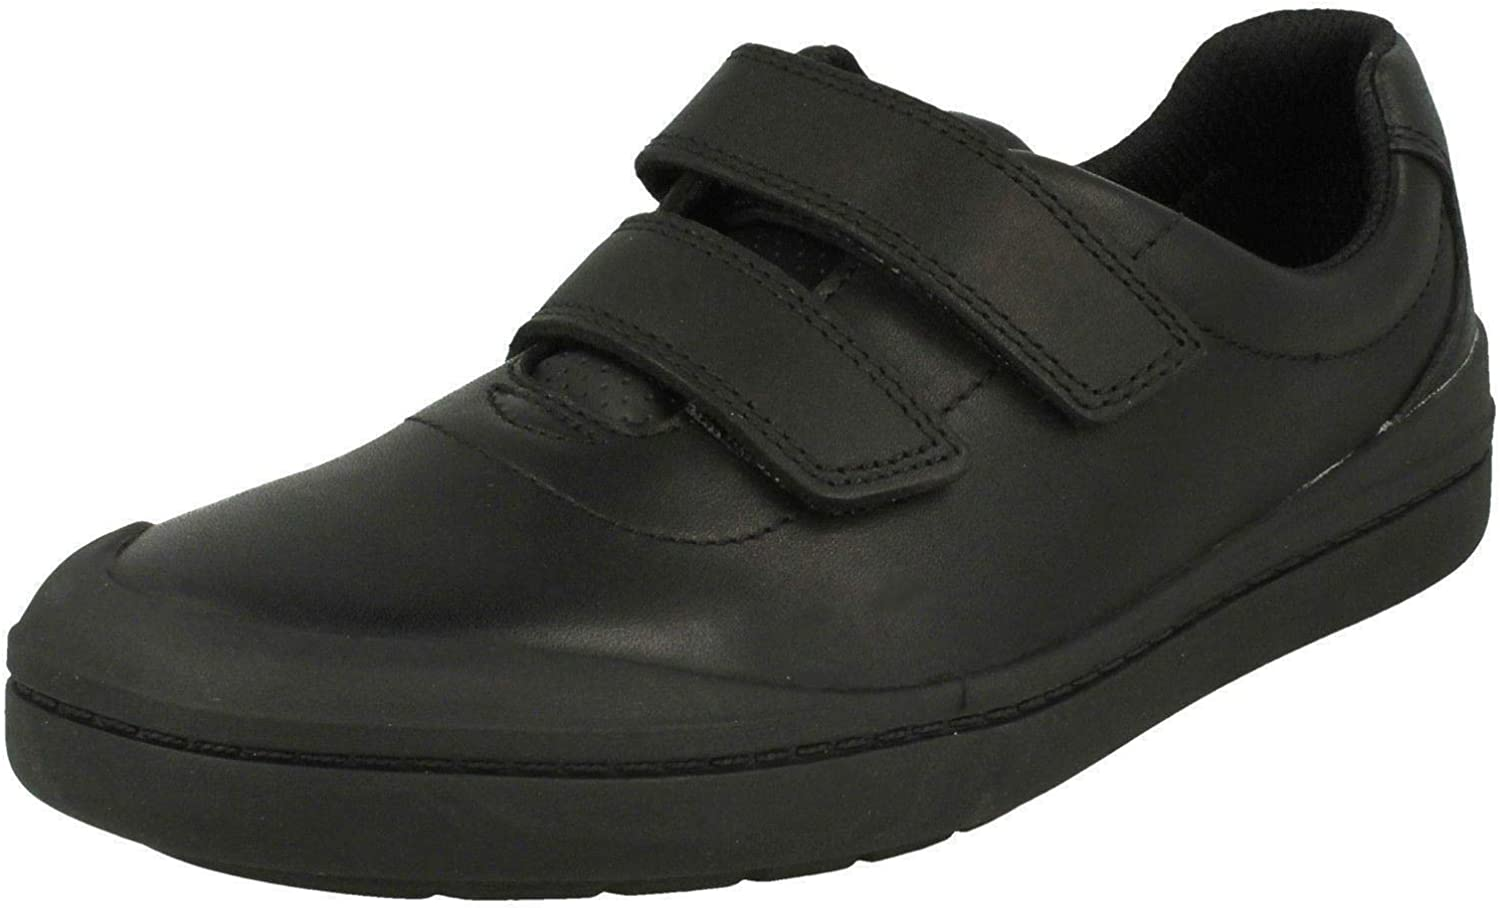 Clarks Rock Play Kid Leather Shoes in Black Standard Fit Size 13/½